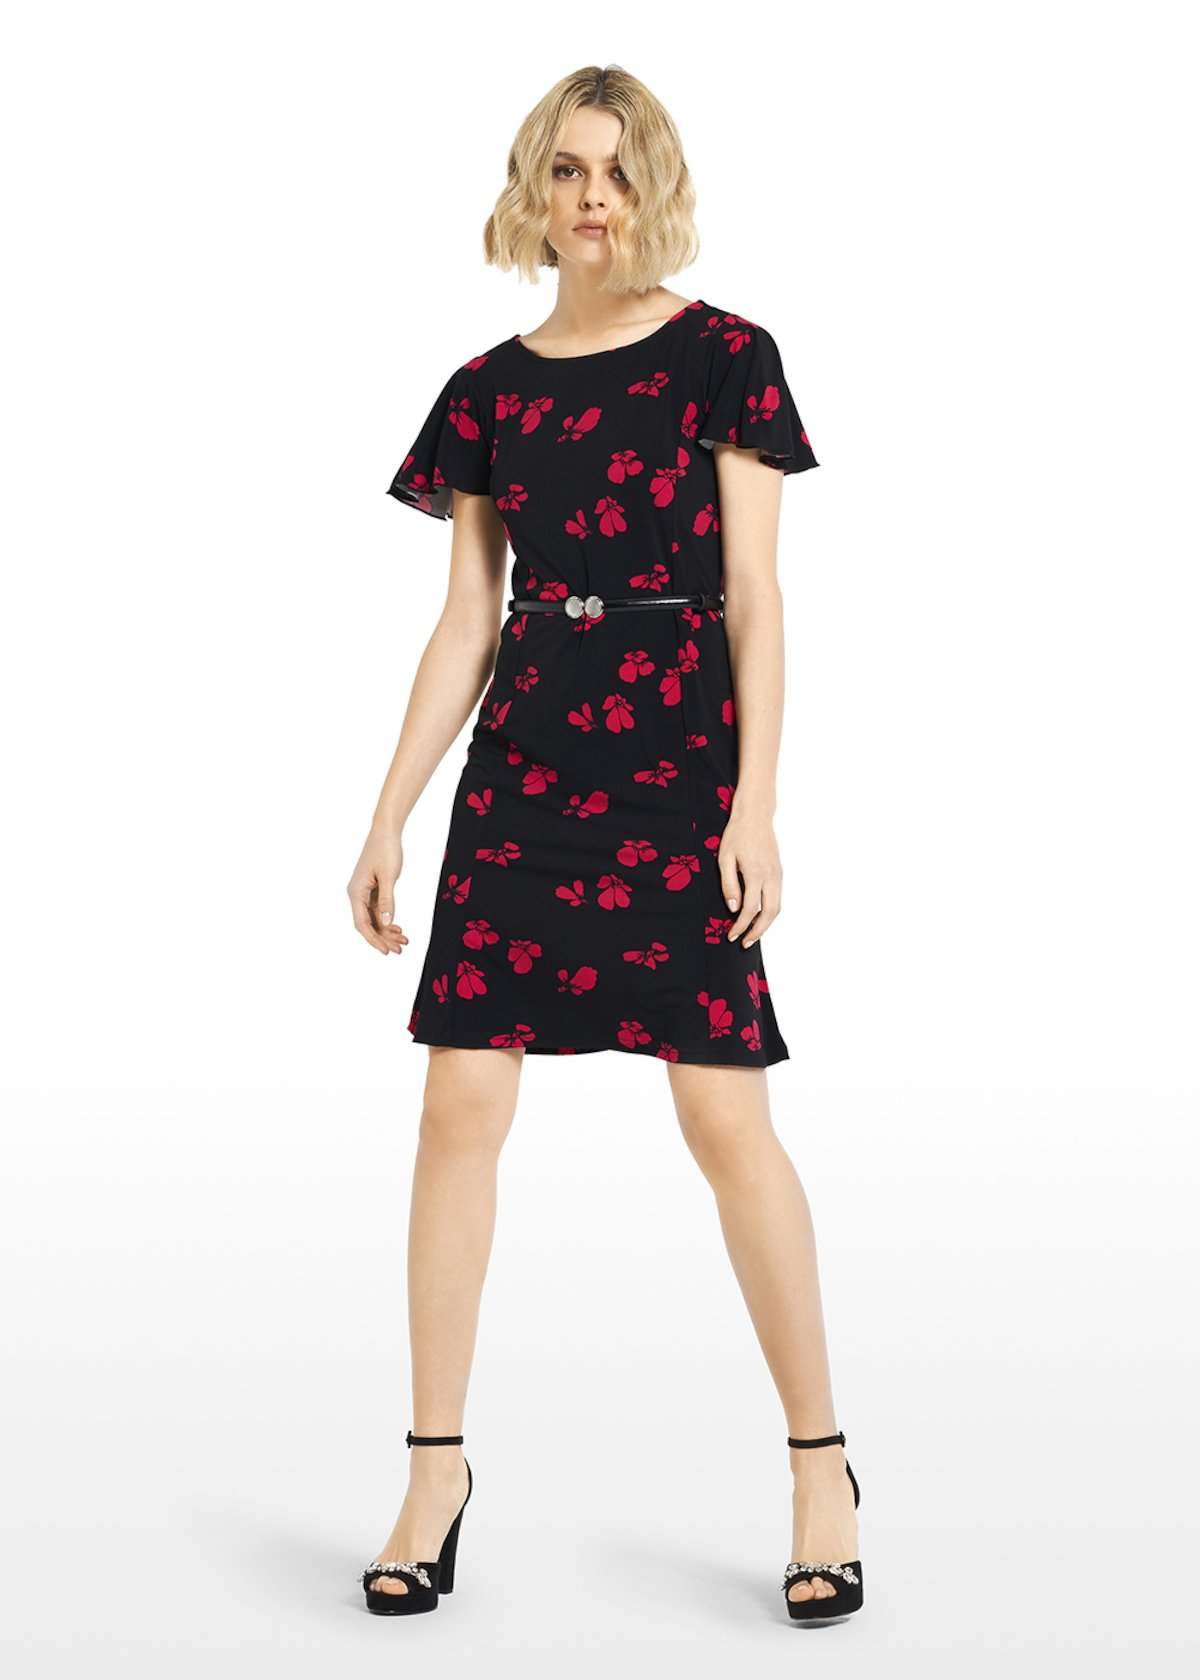 Alek jersey dress micro-flowers pattern with boat neckline - Black\ Tulipano\ Fantasia - Woman